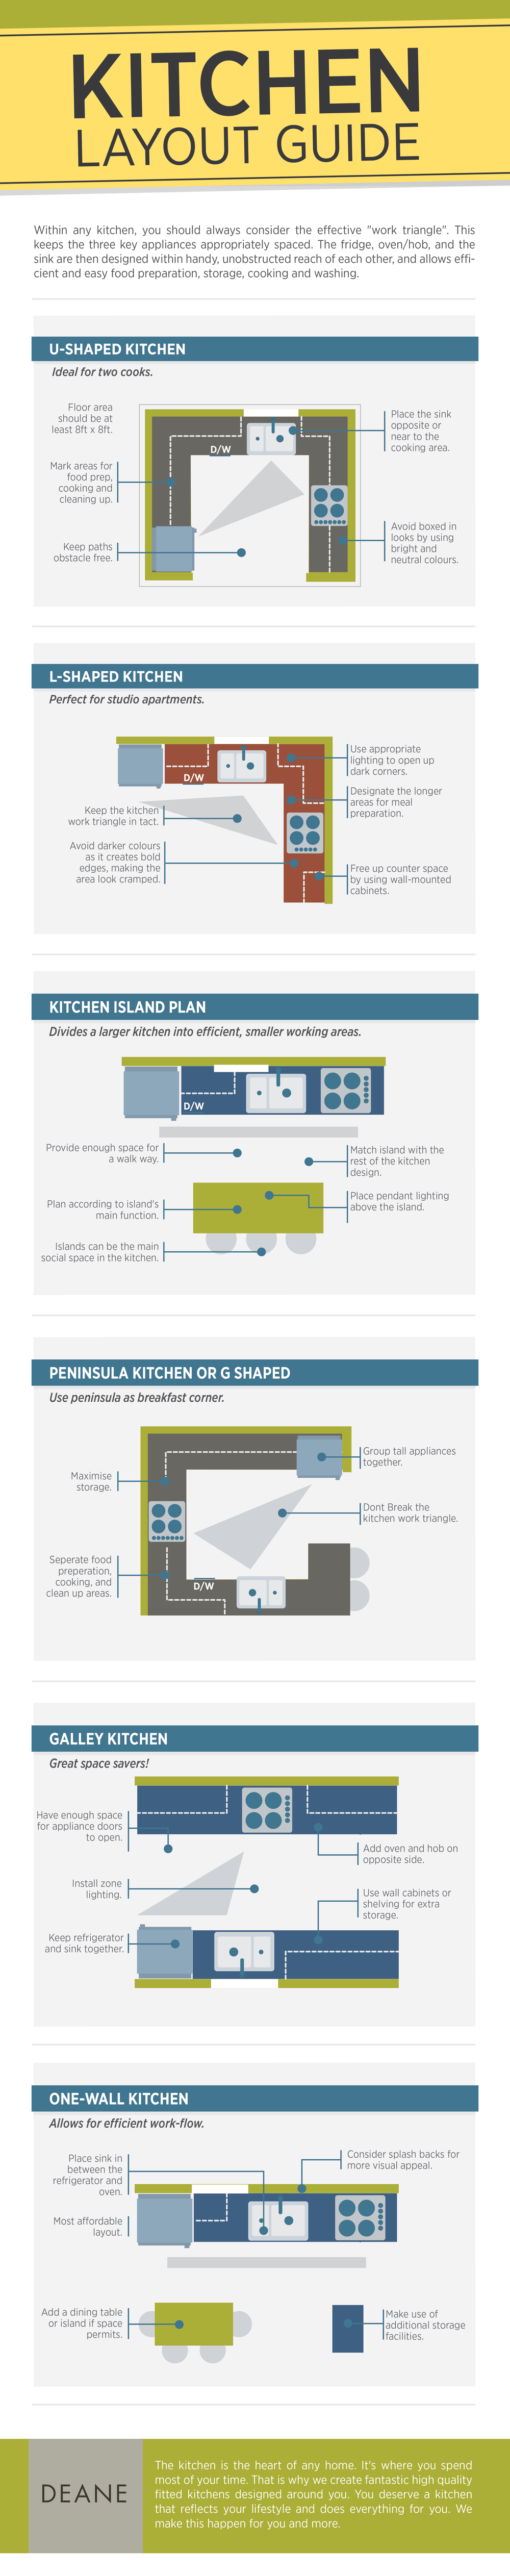 Our handy kitchen layout guide for Kitchen layout guide